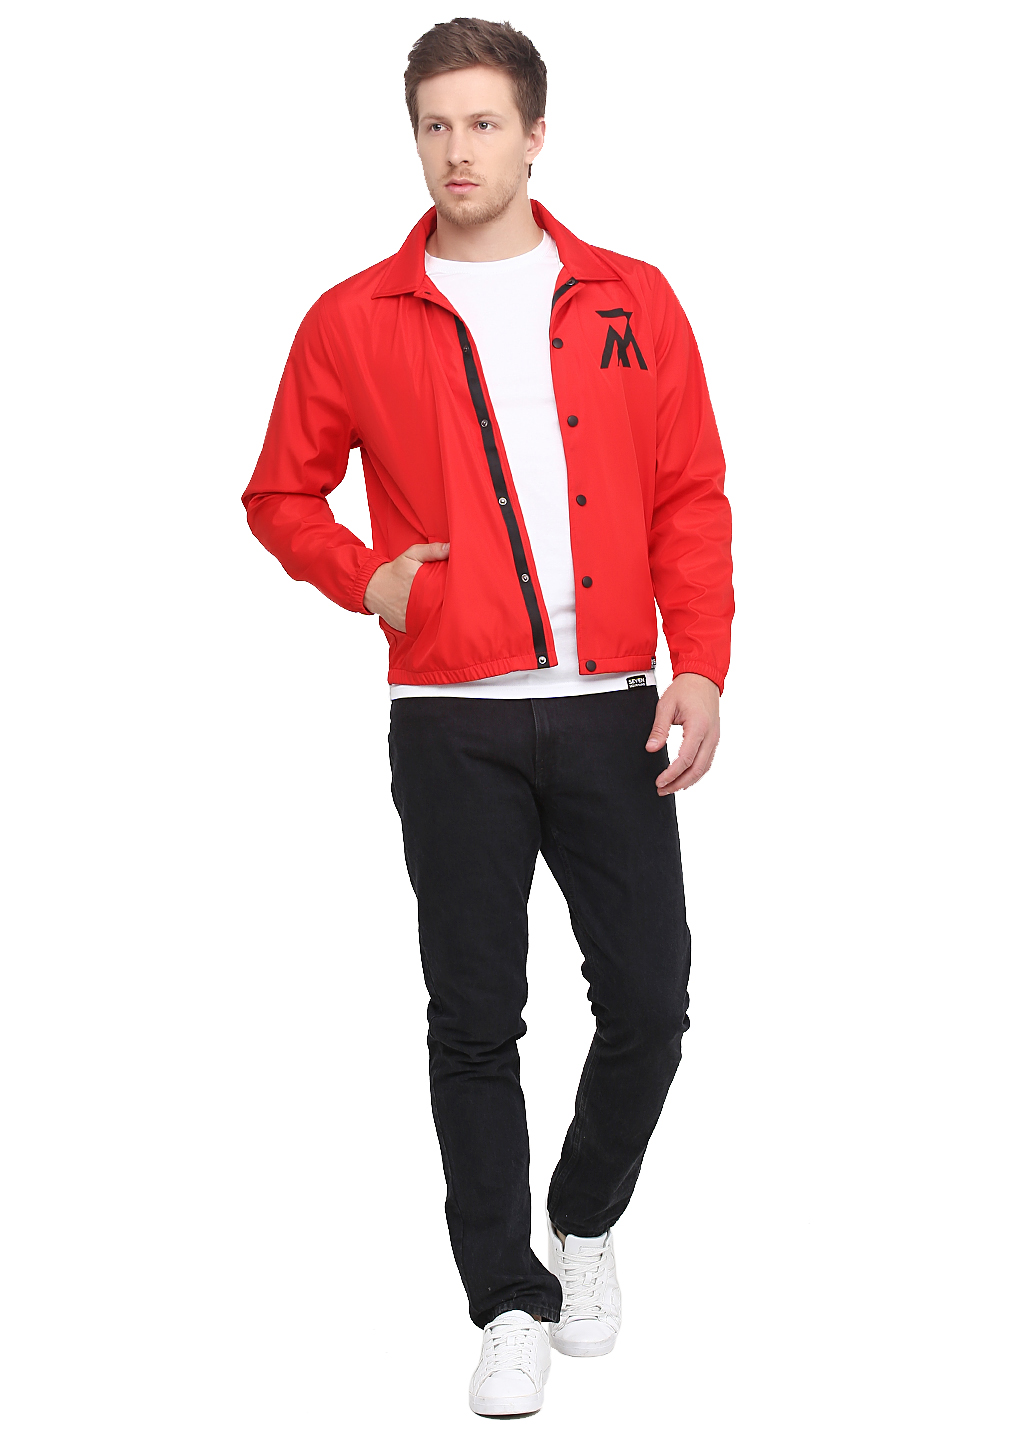 Coach Jacket Logo, Red, S